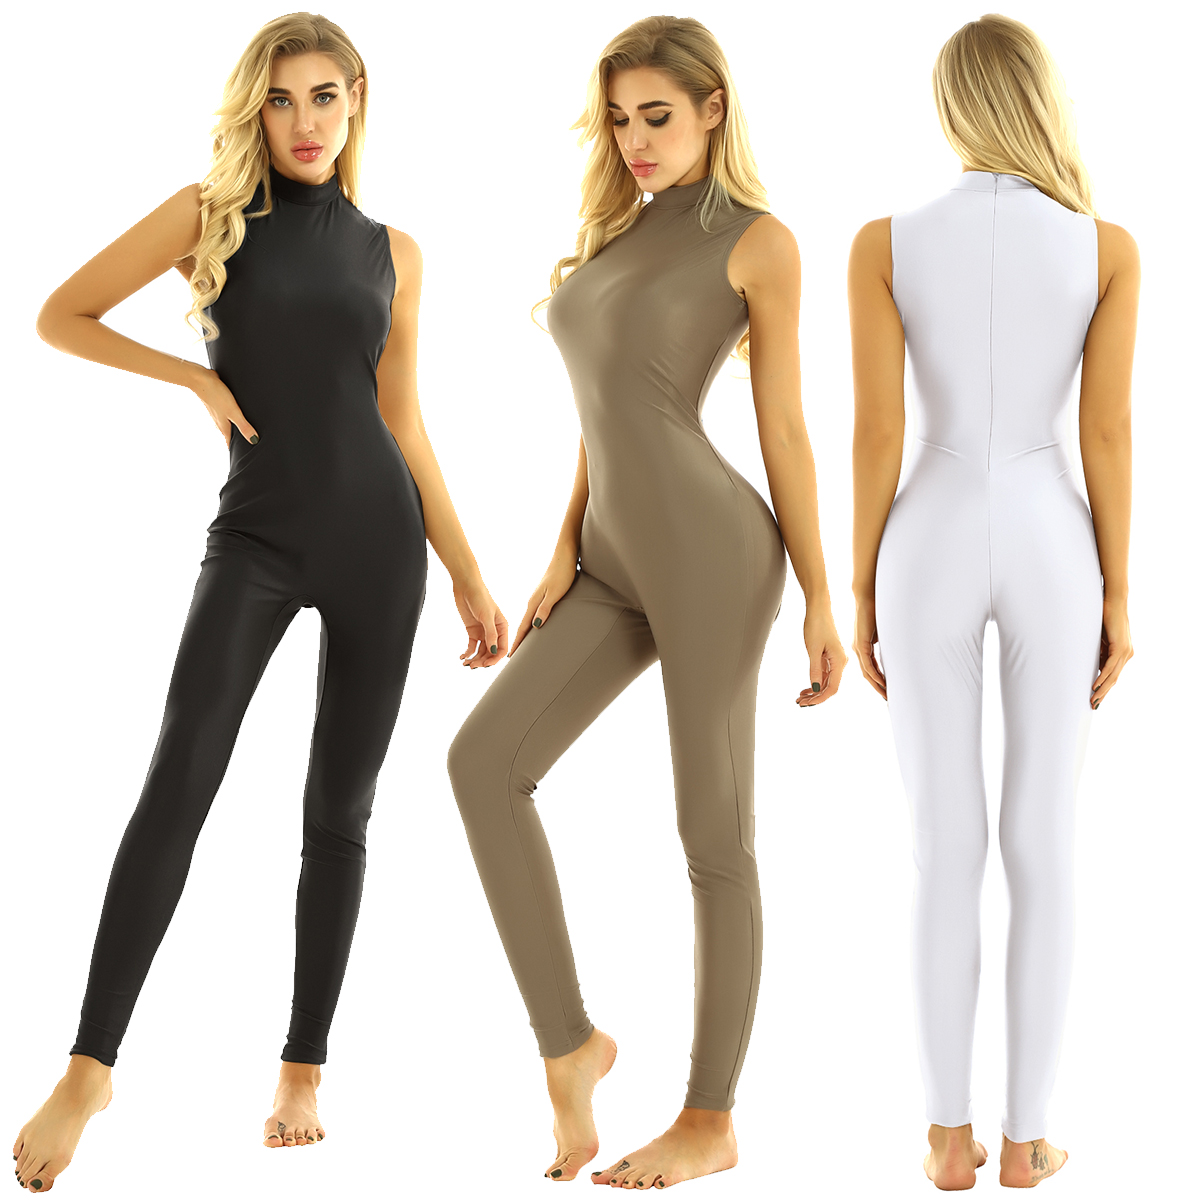 Women High Neck Sleeveless Stretchy Unitard Yoga Dance Bodysuit Adult Gymnastics Leotard Sports Jumpsuit Ballet Dance Costume